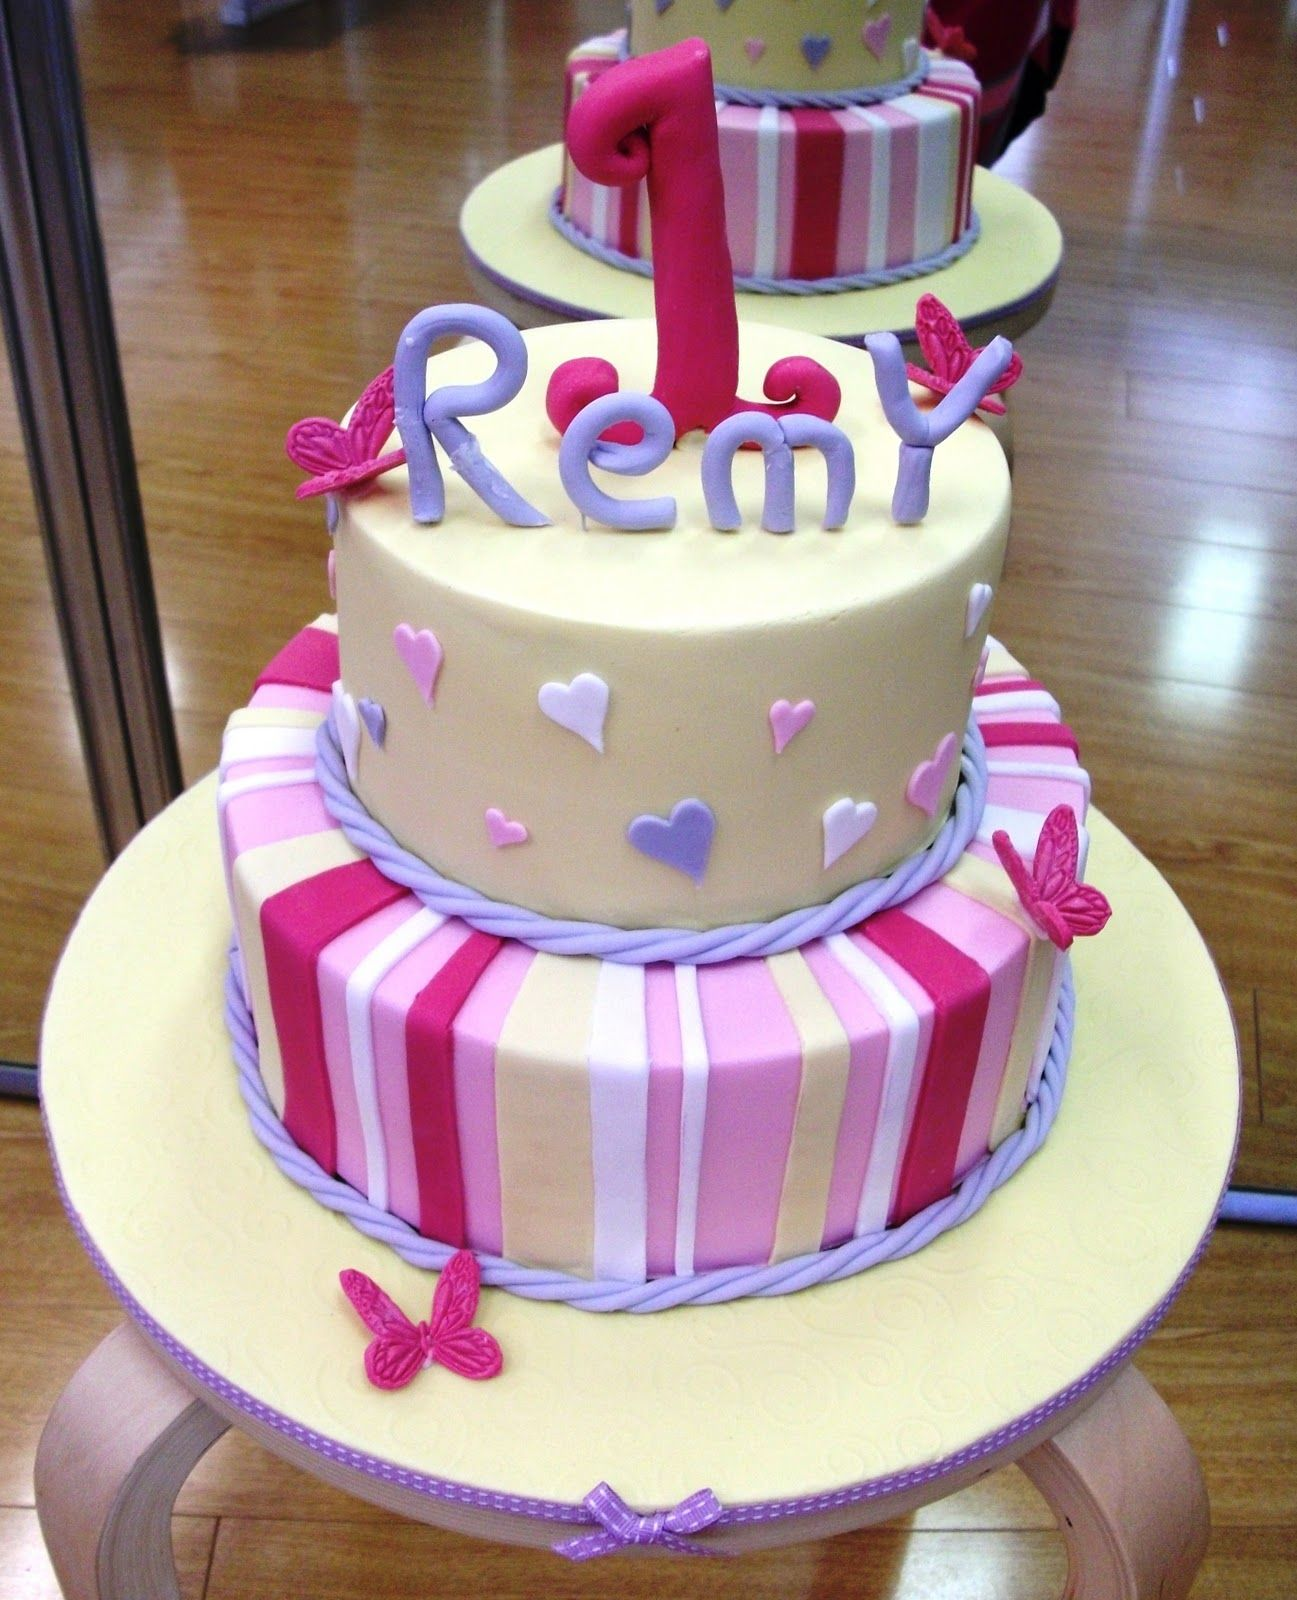 Pretty cake for kids birthday Bridam House Co Pinterest